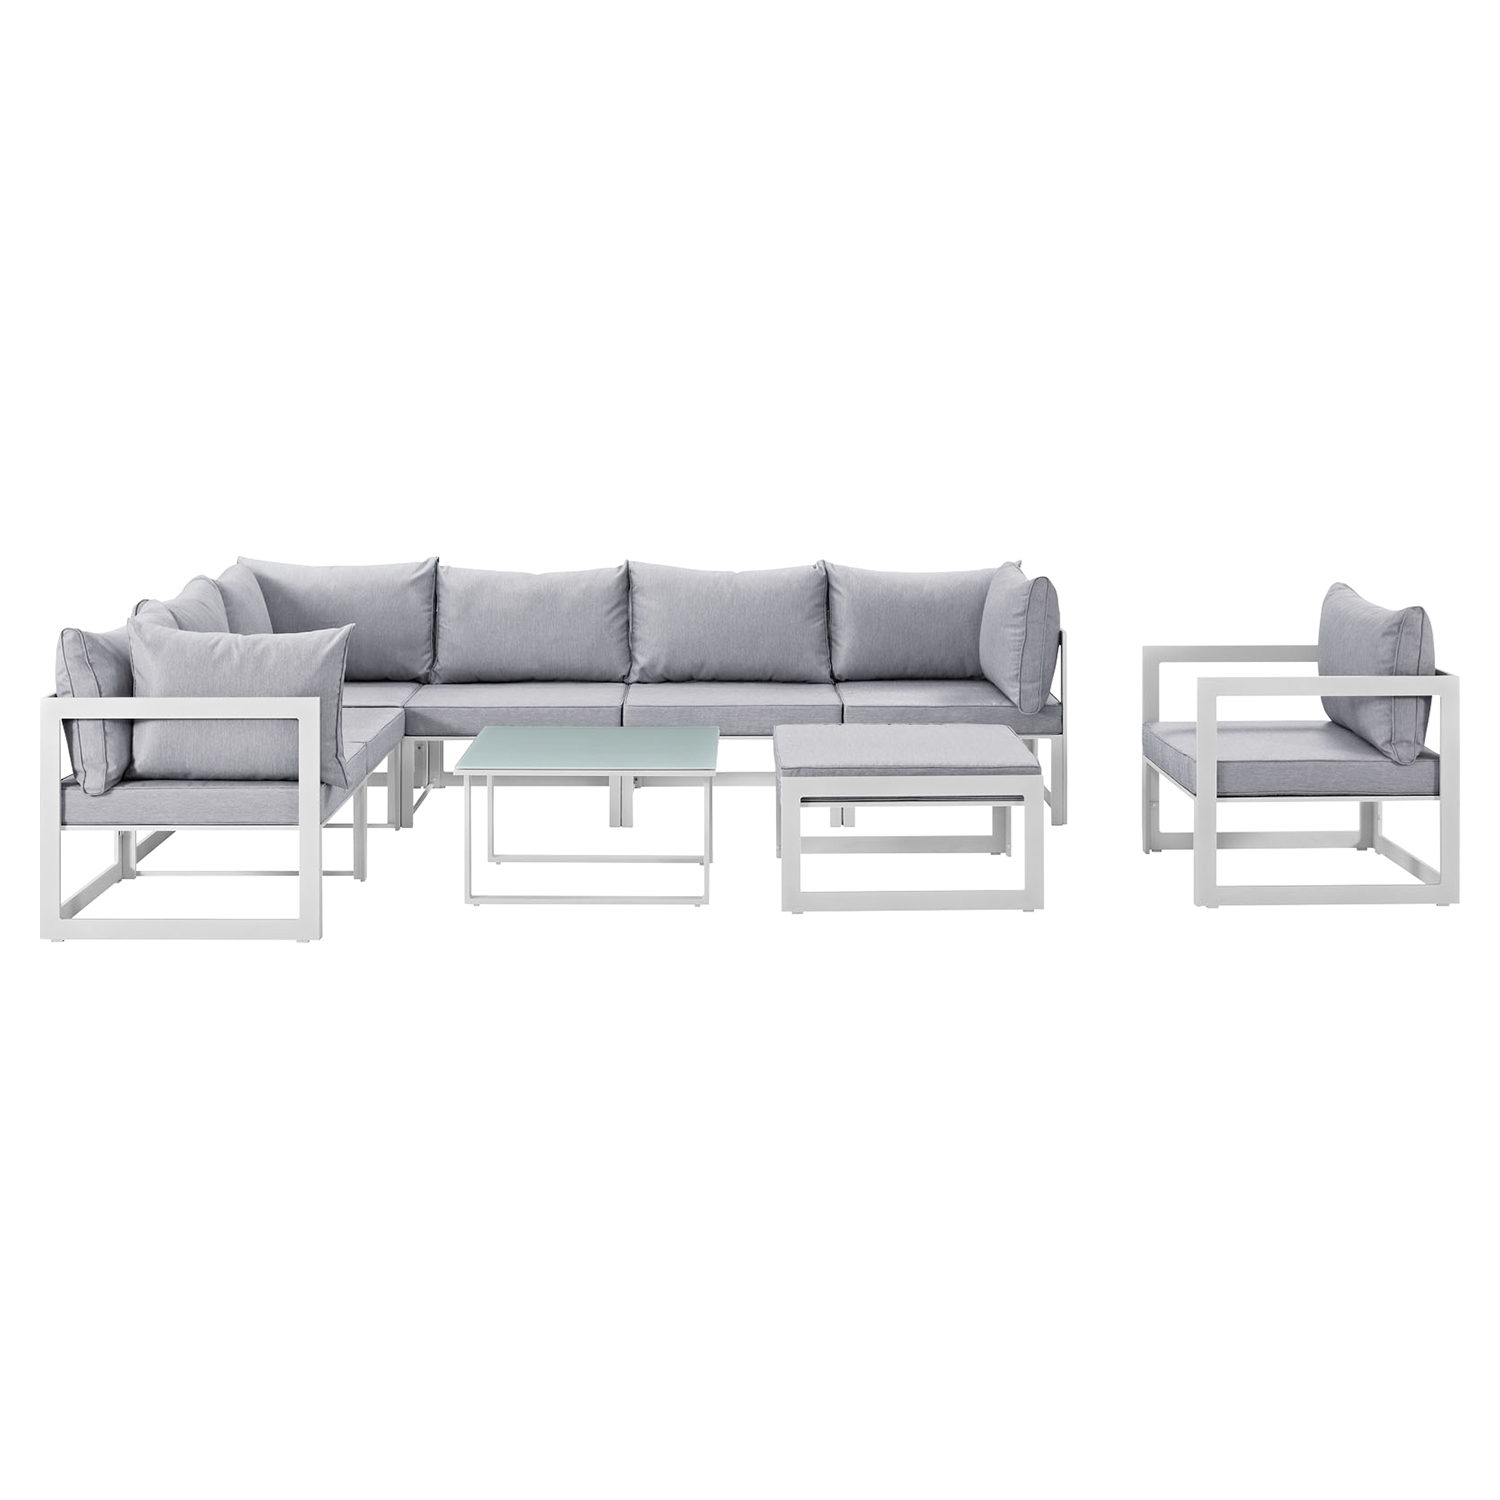 Fortuna 9 Pieces Patio Sectional Sofa Set - White Frame, Gray Cushion - EEI-1734-WHI-GRY-SET